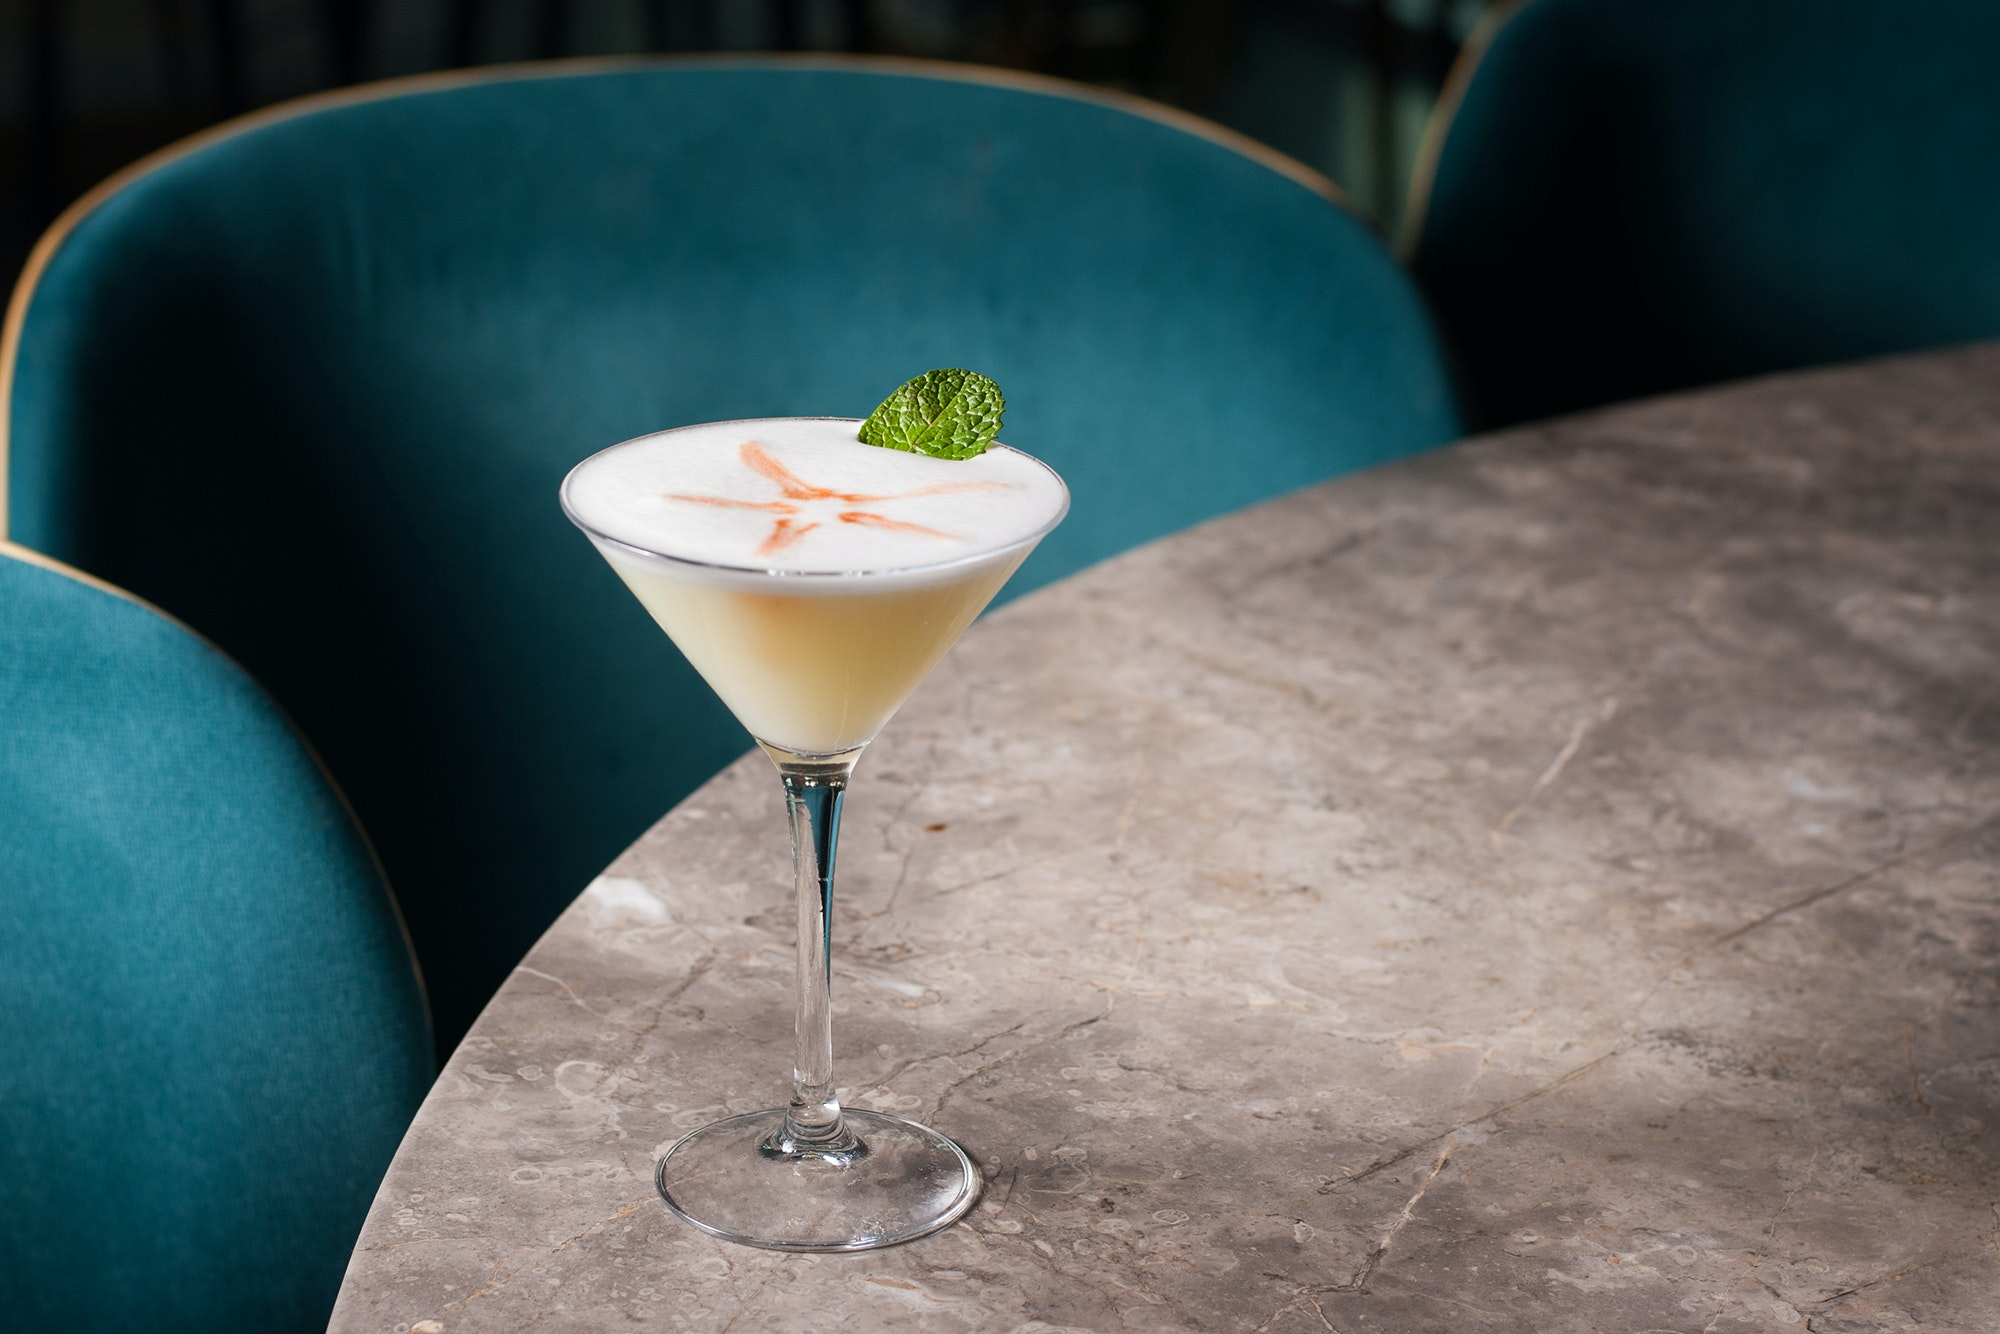 The Bold Botanist cocktail at Hearth '61 features the flavors and history of the Grand Canyon.